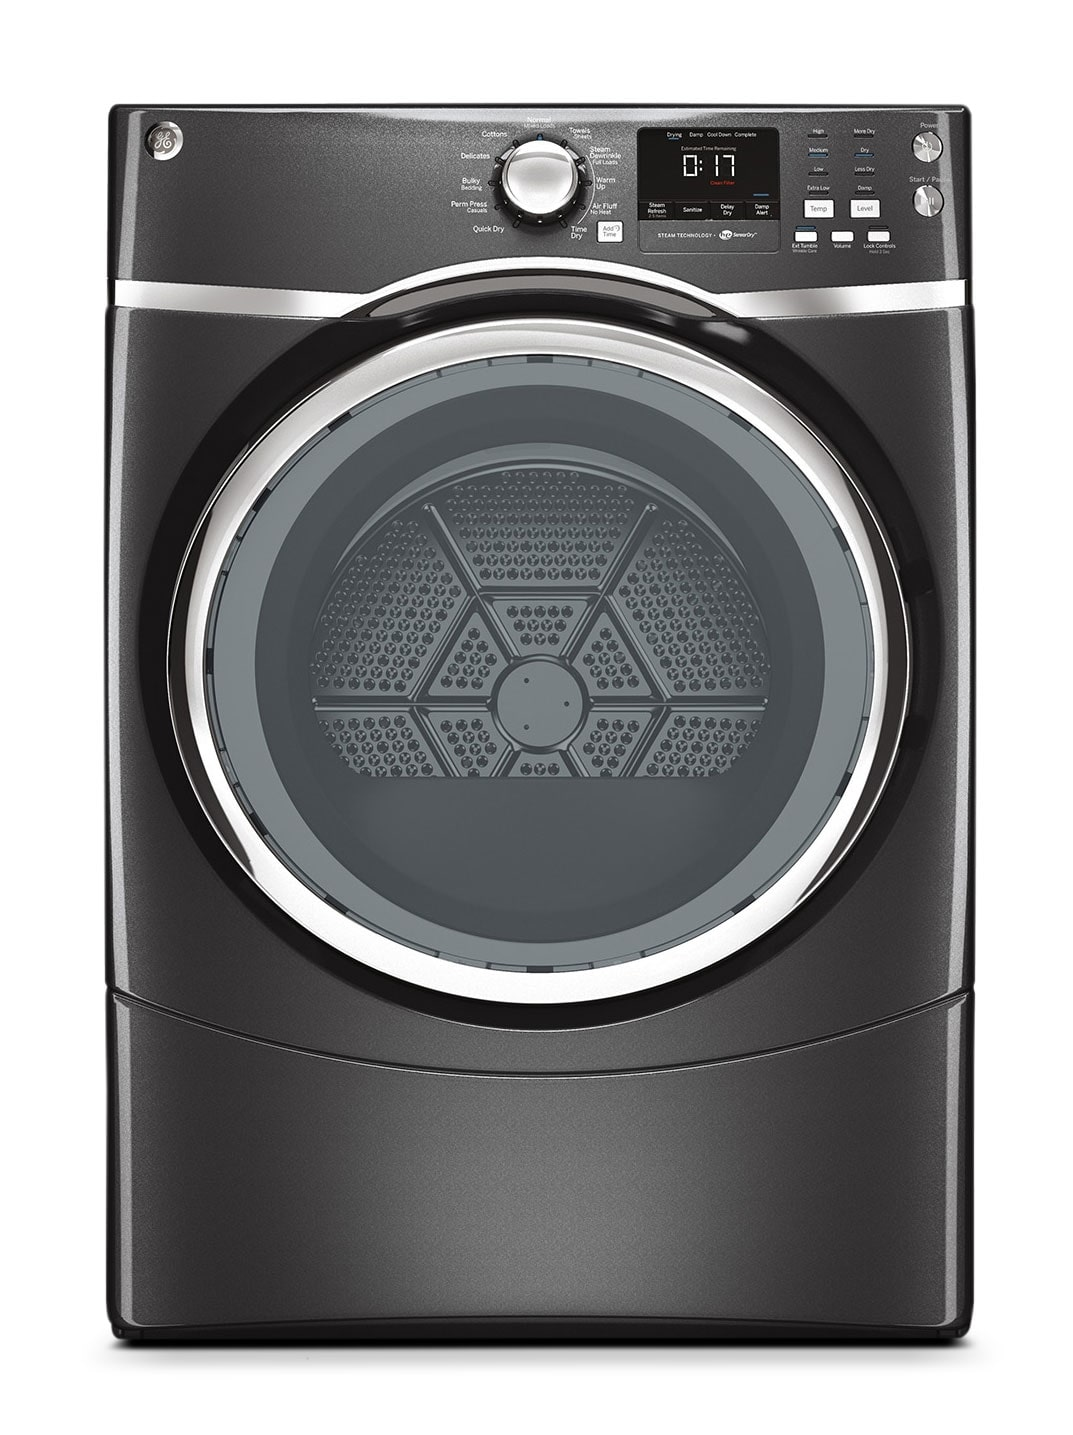 Washers and Dryers - GE Diamond Grey Electric Dryer (7.5 Cu. Ft.) - GFMS175EHDG